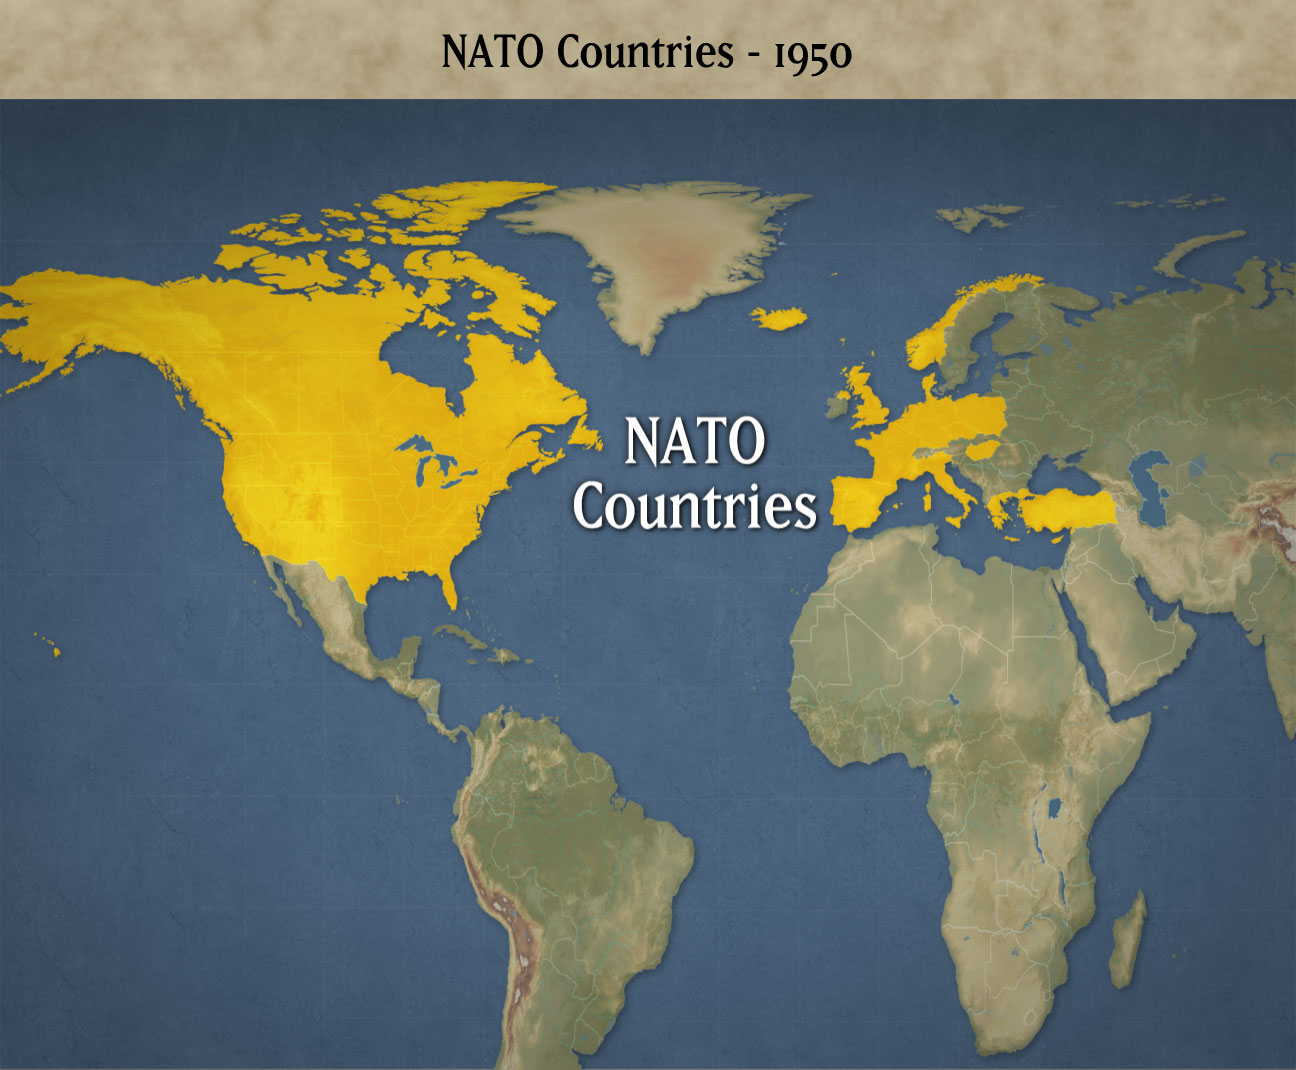 Stephanie global blog nato and the warsaw pact the nato stand for nation atlantic treaty organization nato was a intergovernmental military allianceat consisted of several countries in north america gumiabroncs Image collections